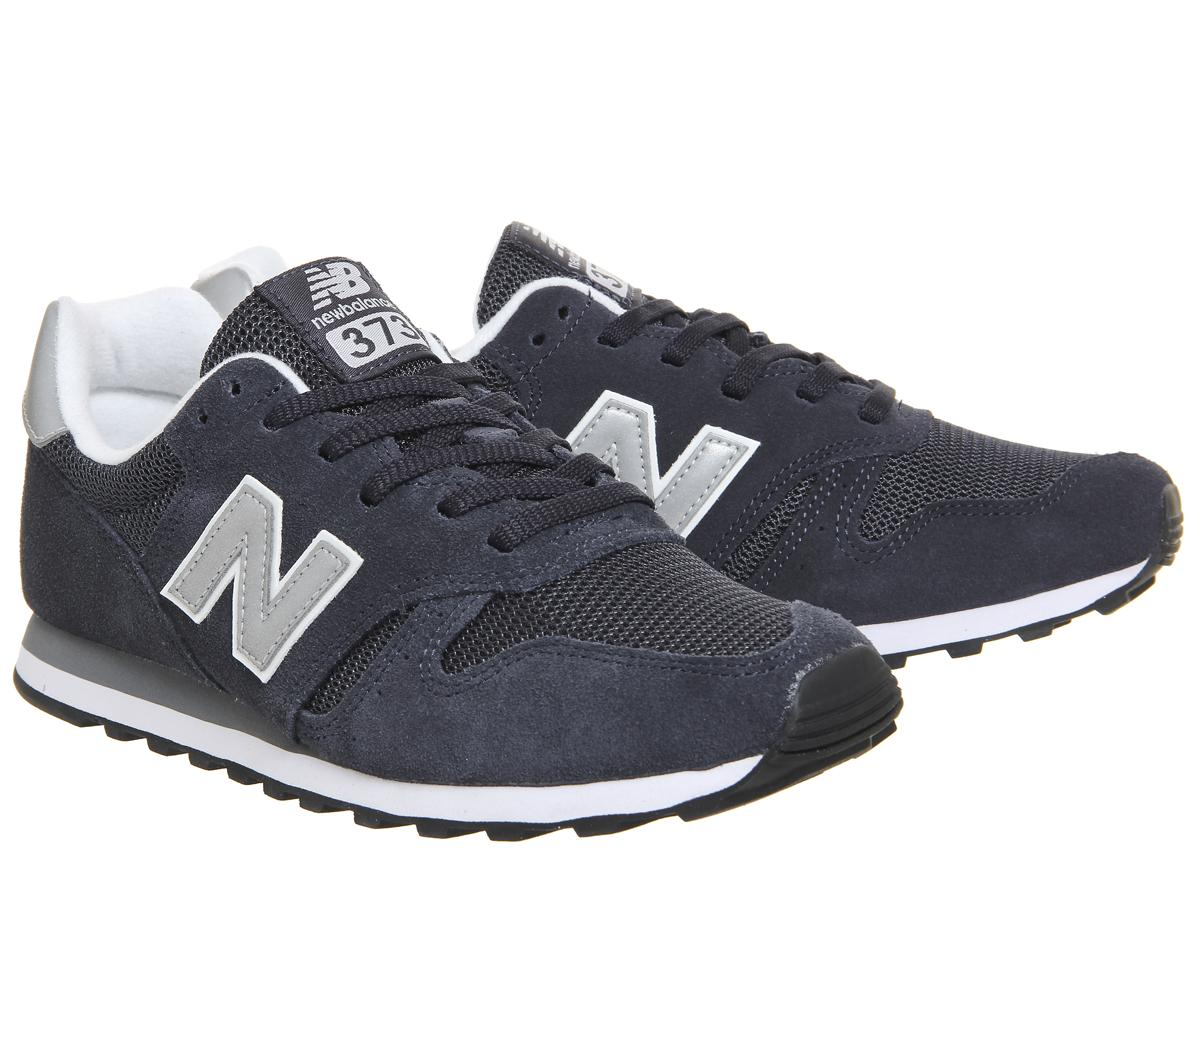 Details about New Balance 373 NavySilver 11.5 US